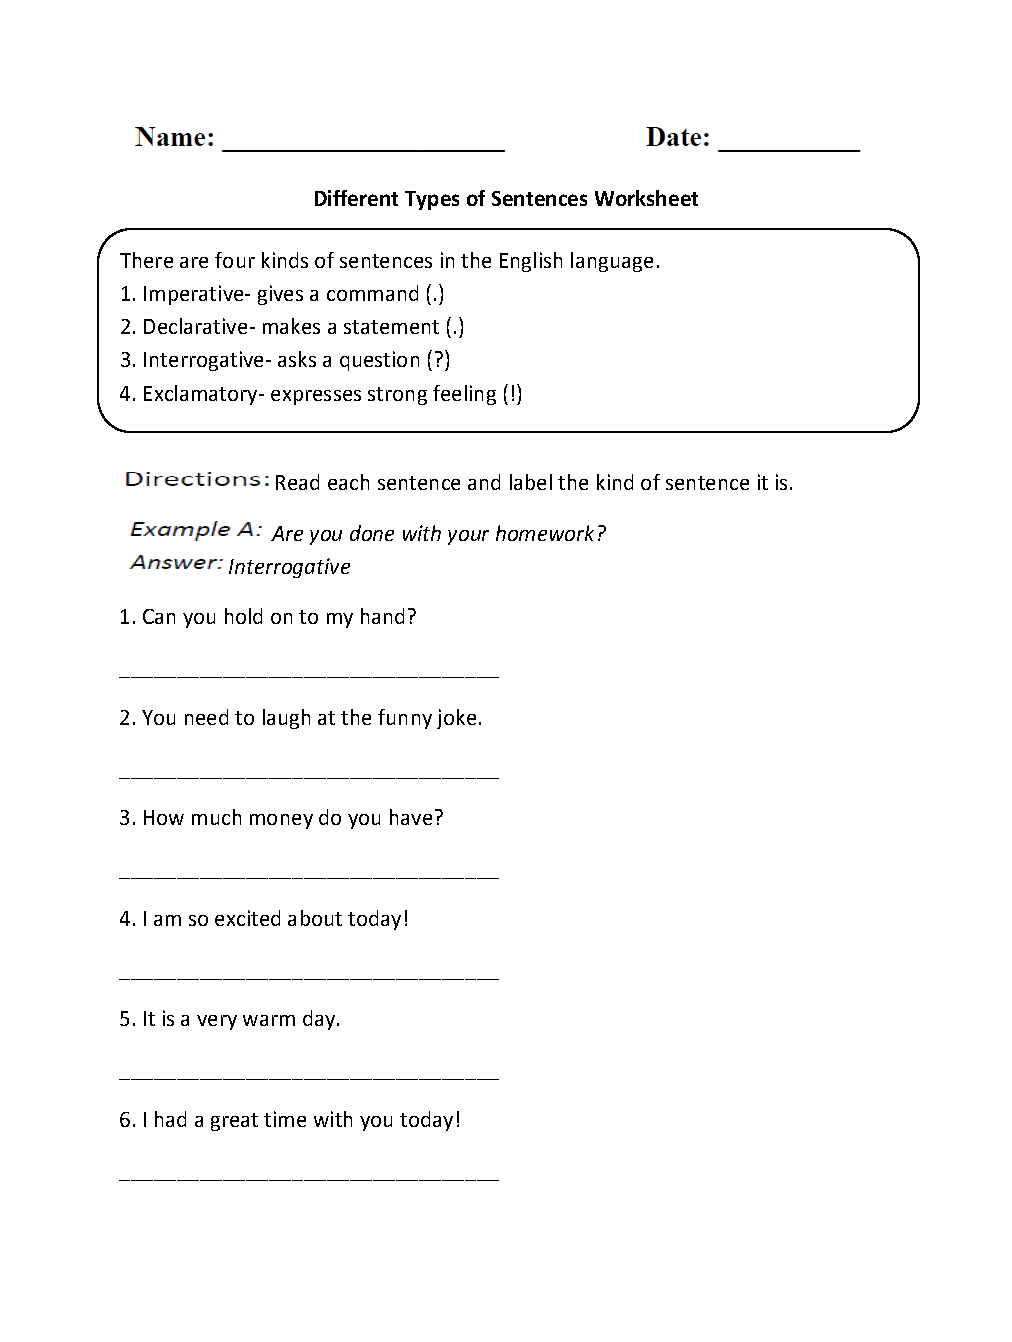 worksheet Number Sentences Worksheets sentences worksheets types of different worksheet